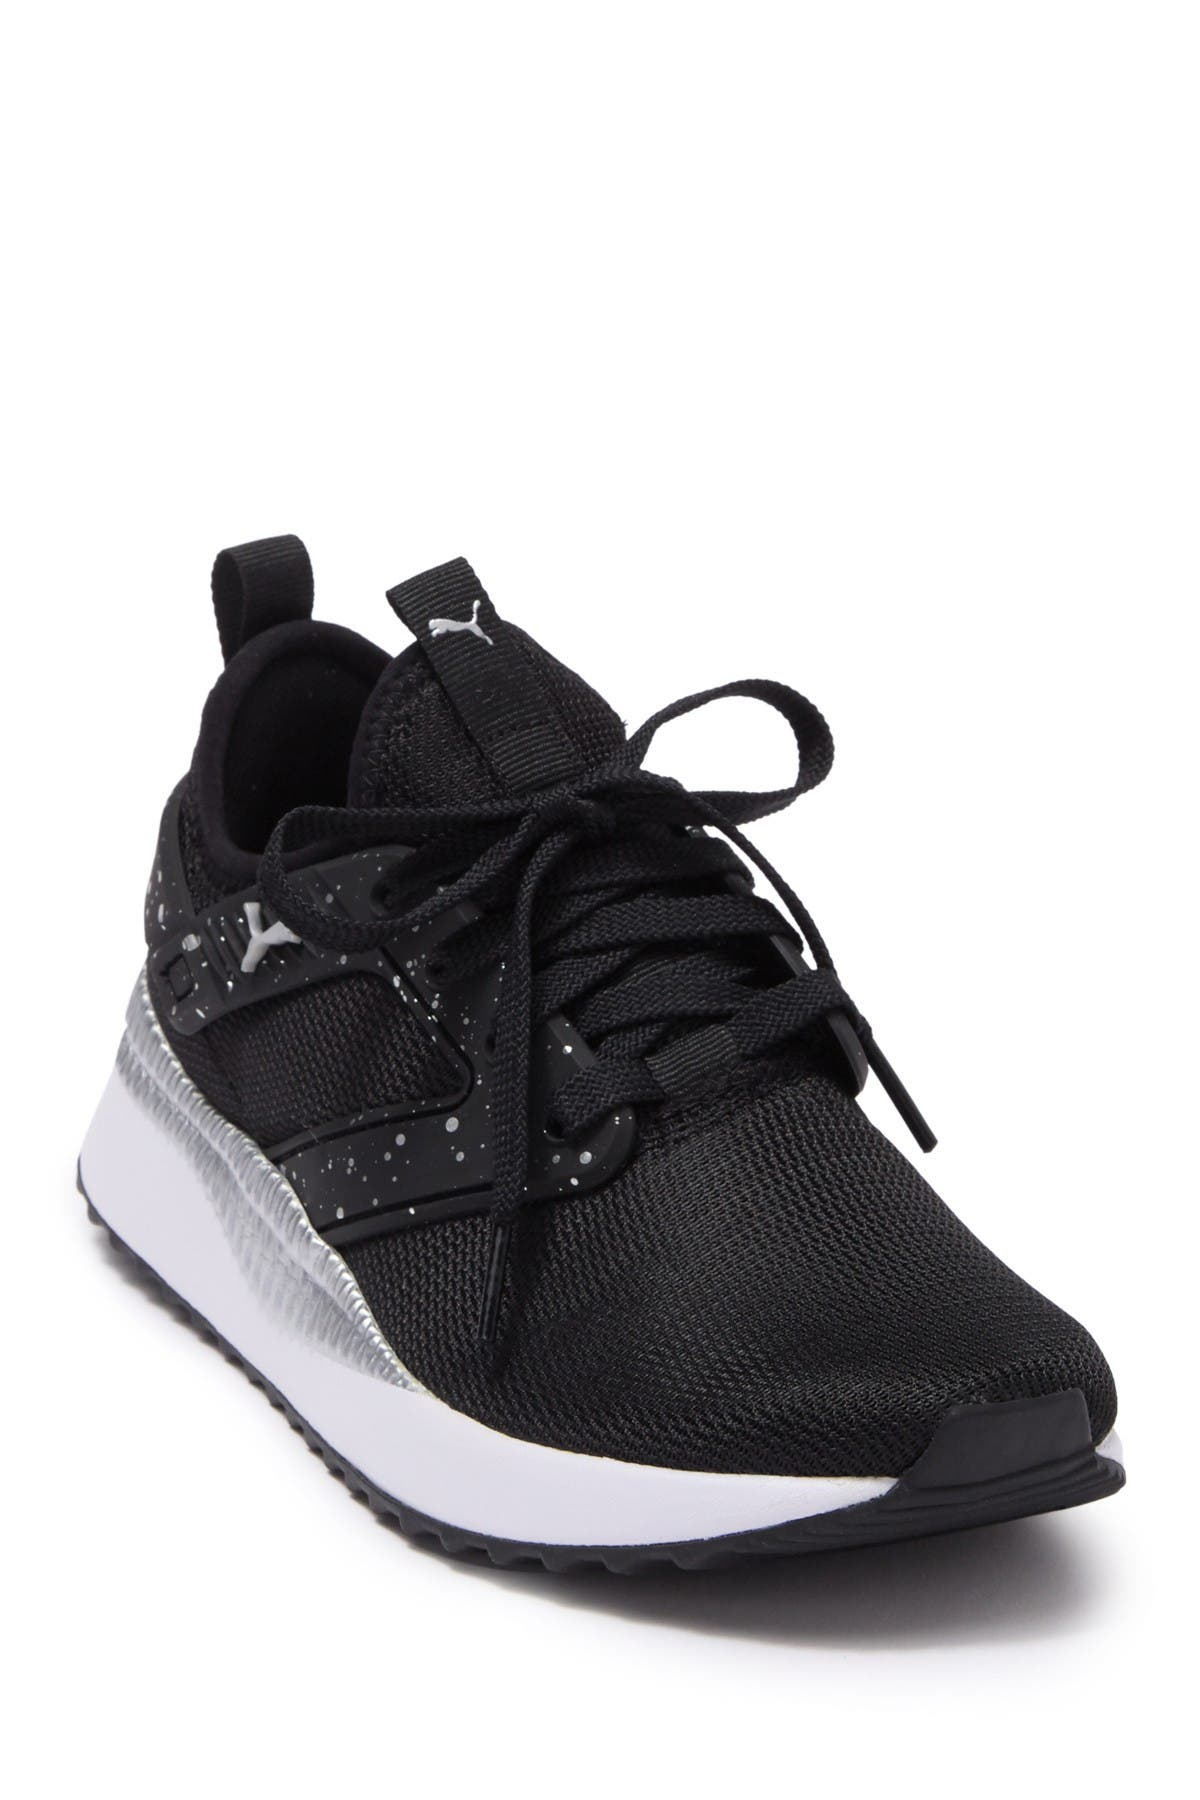 PUMA | Pacer Next Excel MetCage Sneaker